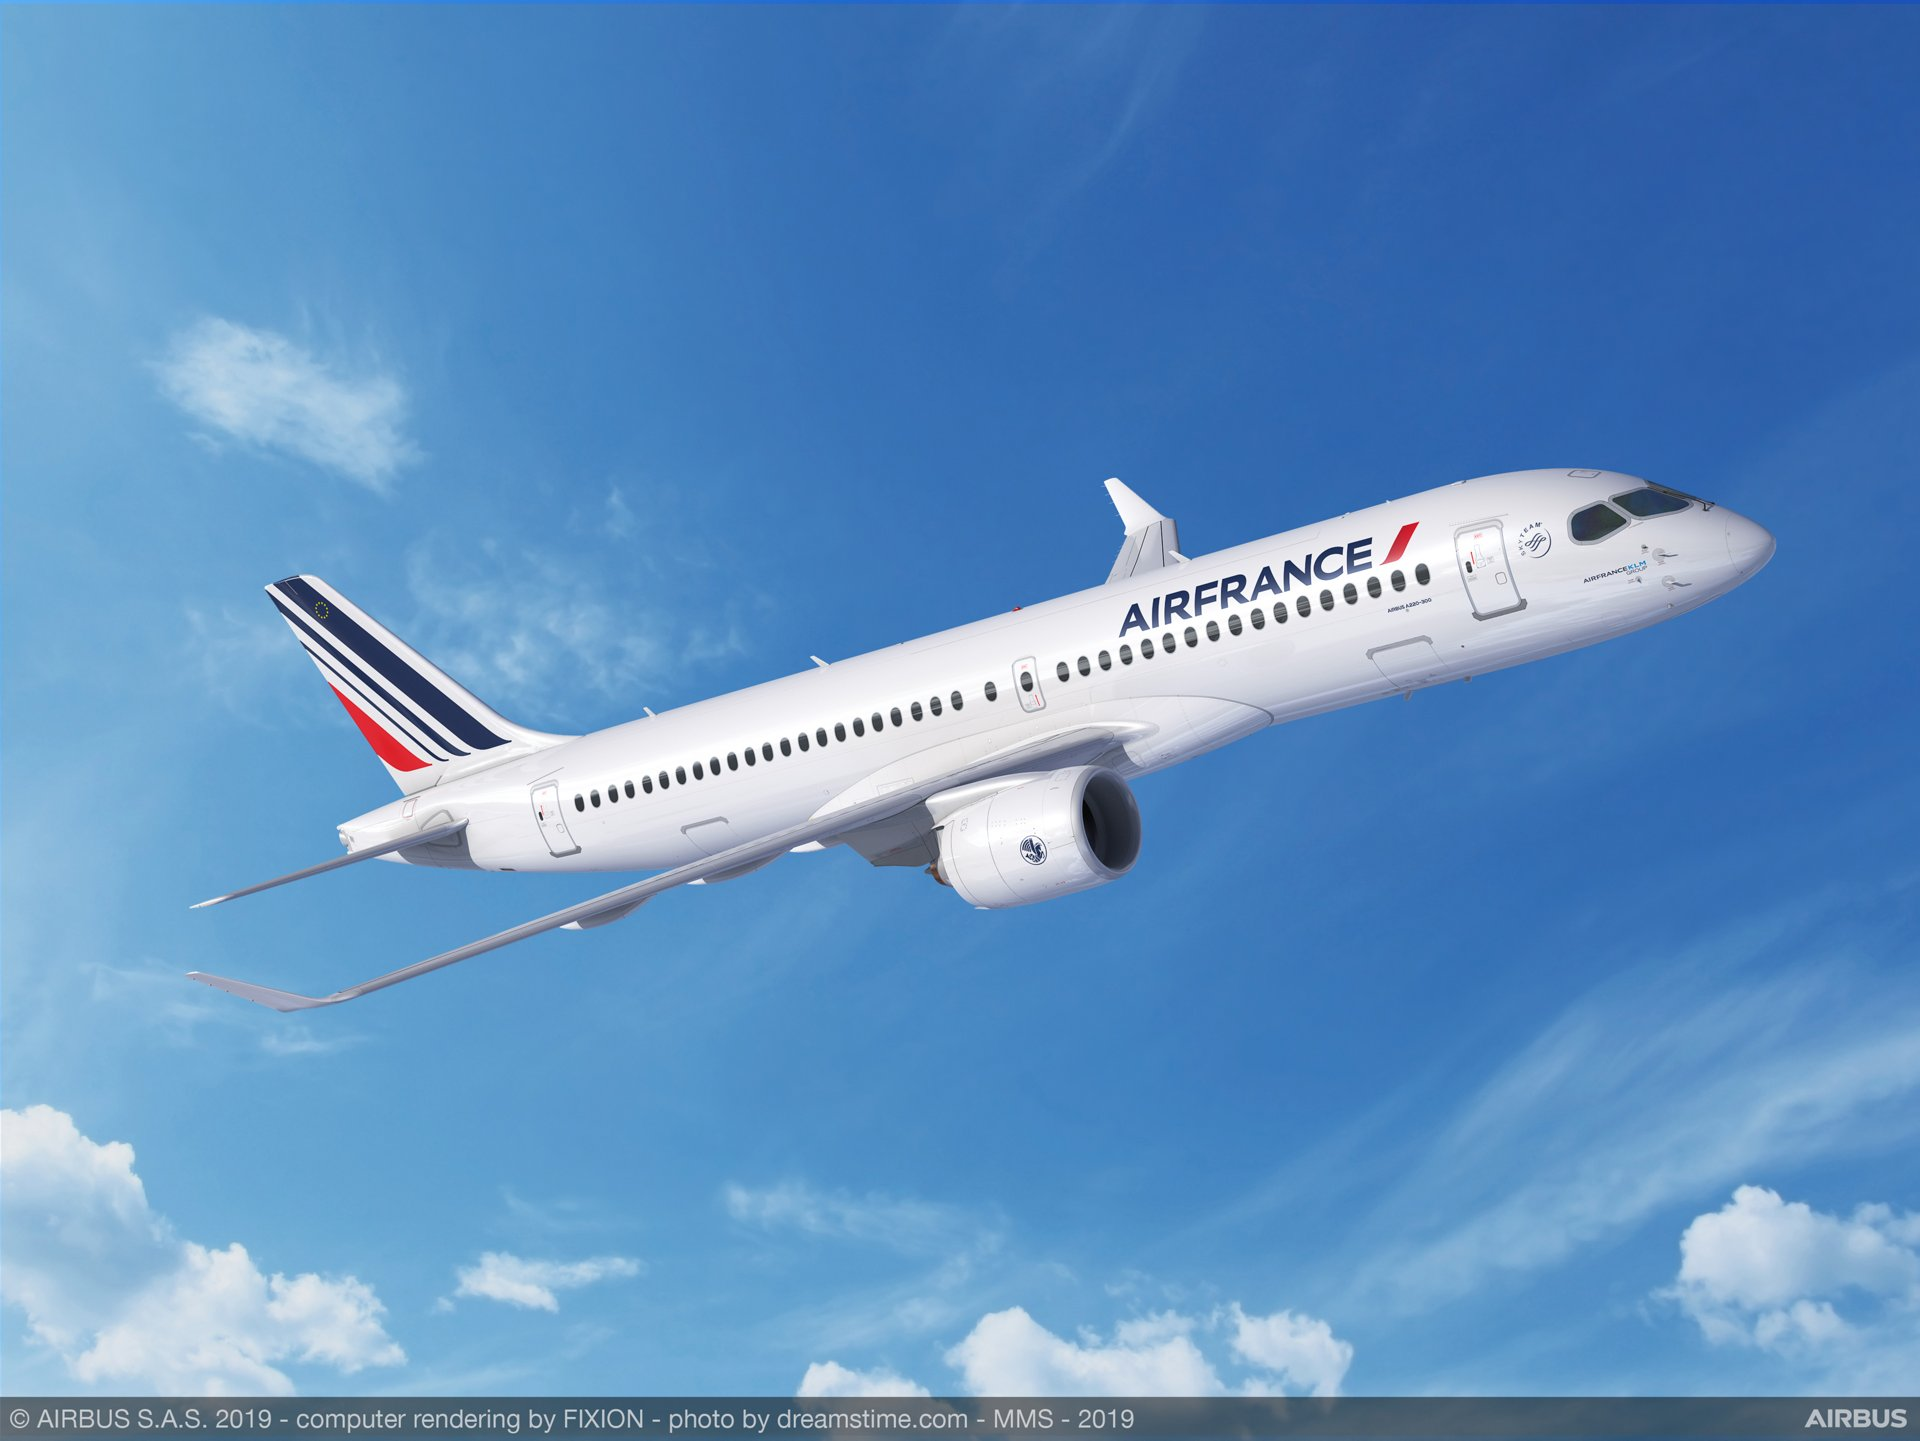 The Air France–KLM Group signed a Memorandum of Understanding in July 2019 for 60 A220-300 jetliners; these larger members of the efficient and technologically advanced single-aisle A220 Family are intended to be operated by Air France